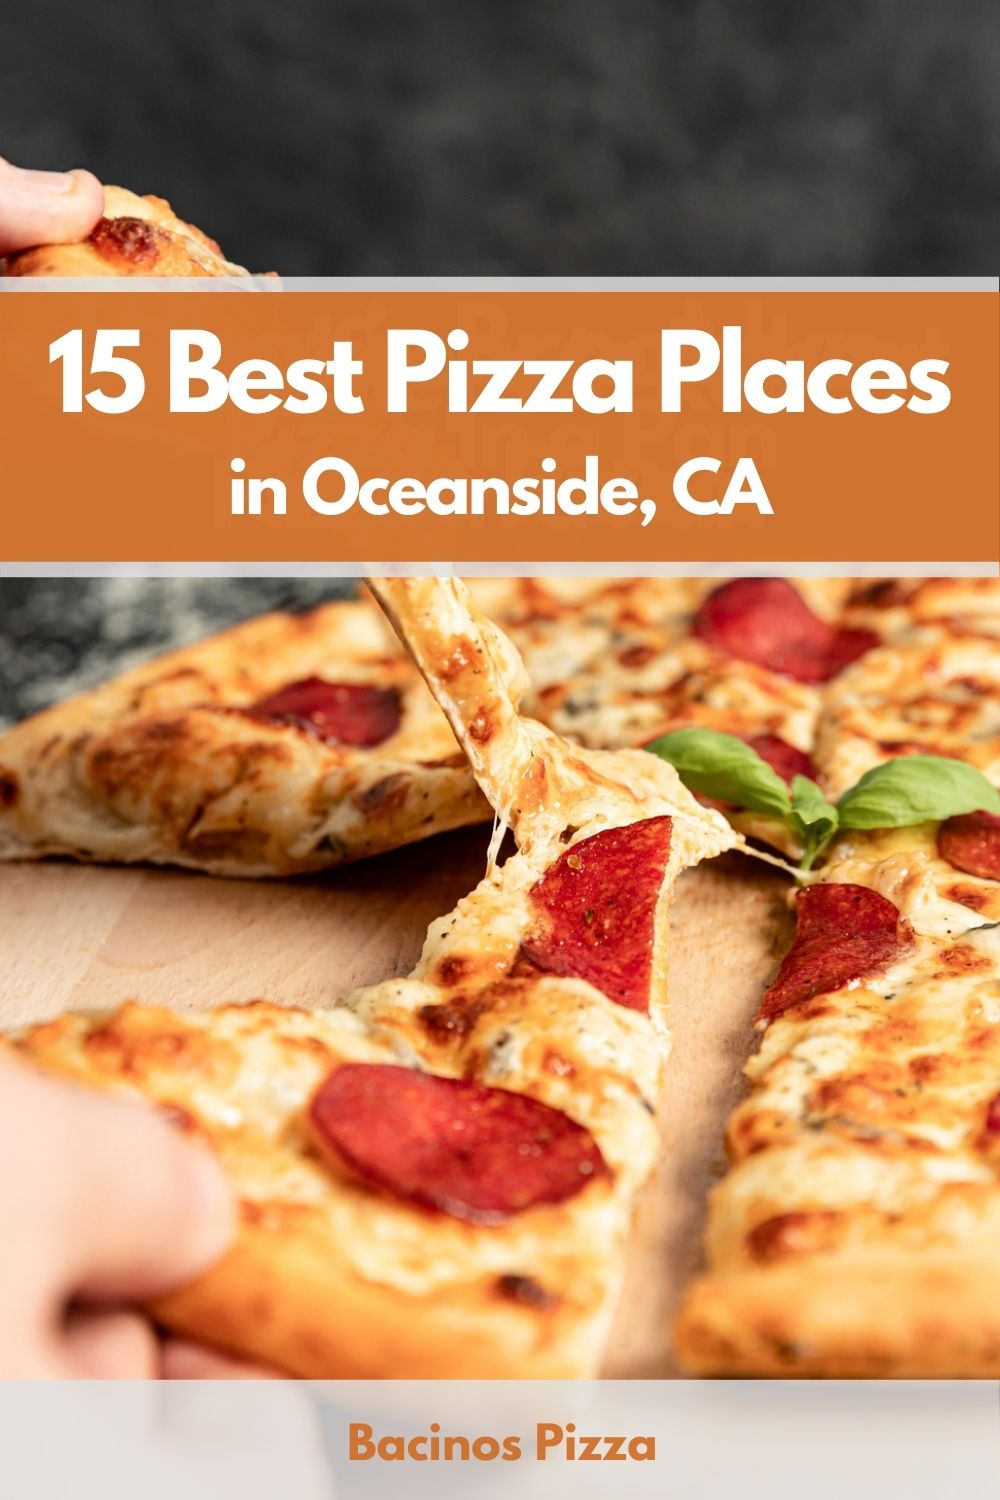 15 Best Pizza Places in Oceanside, CA pin